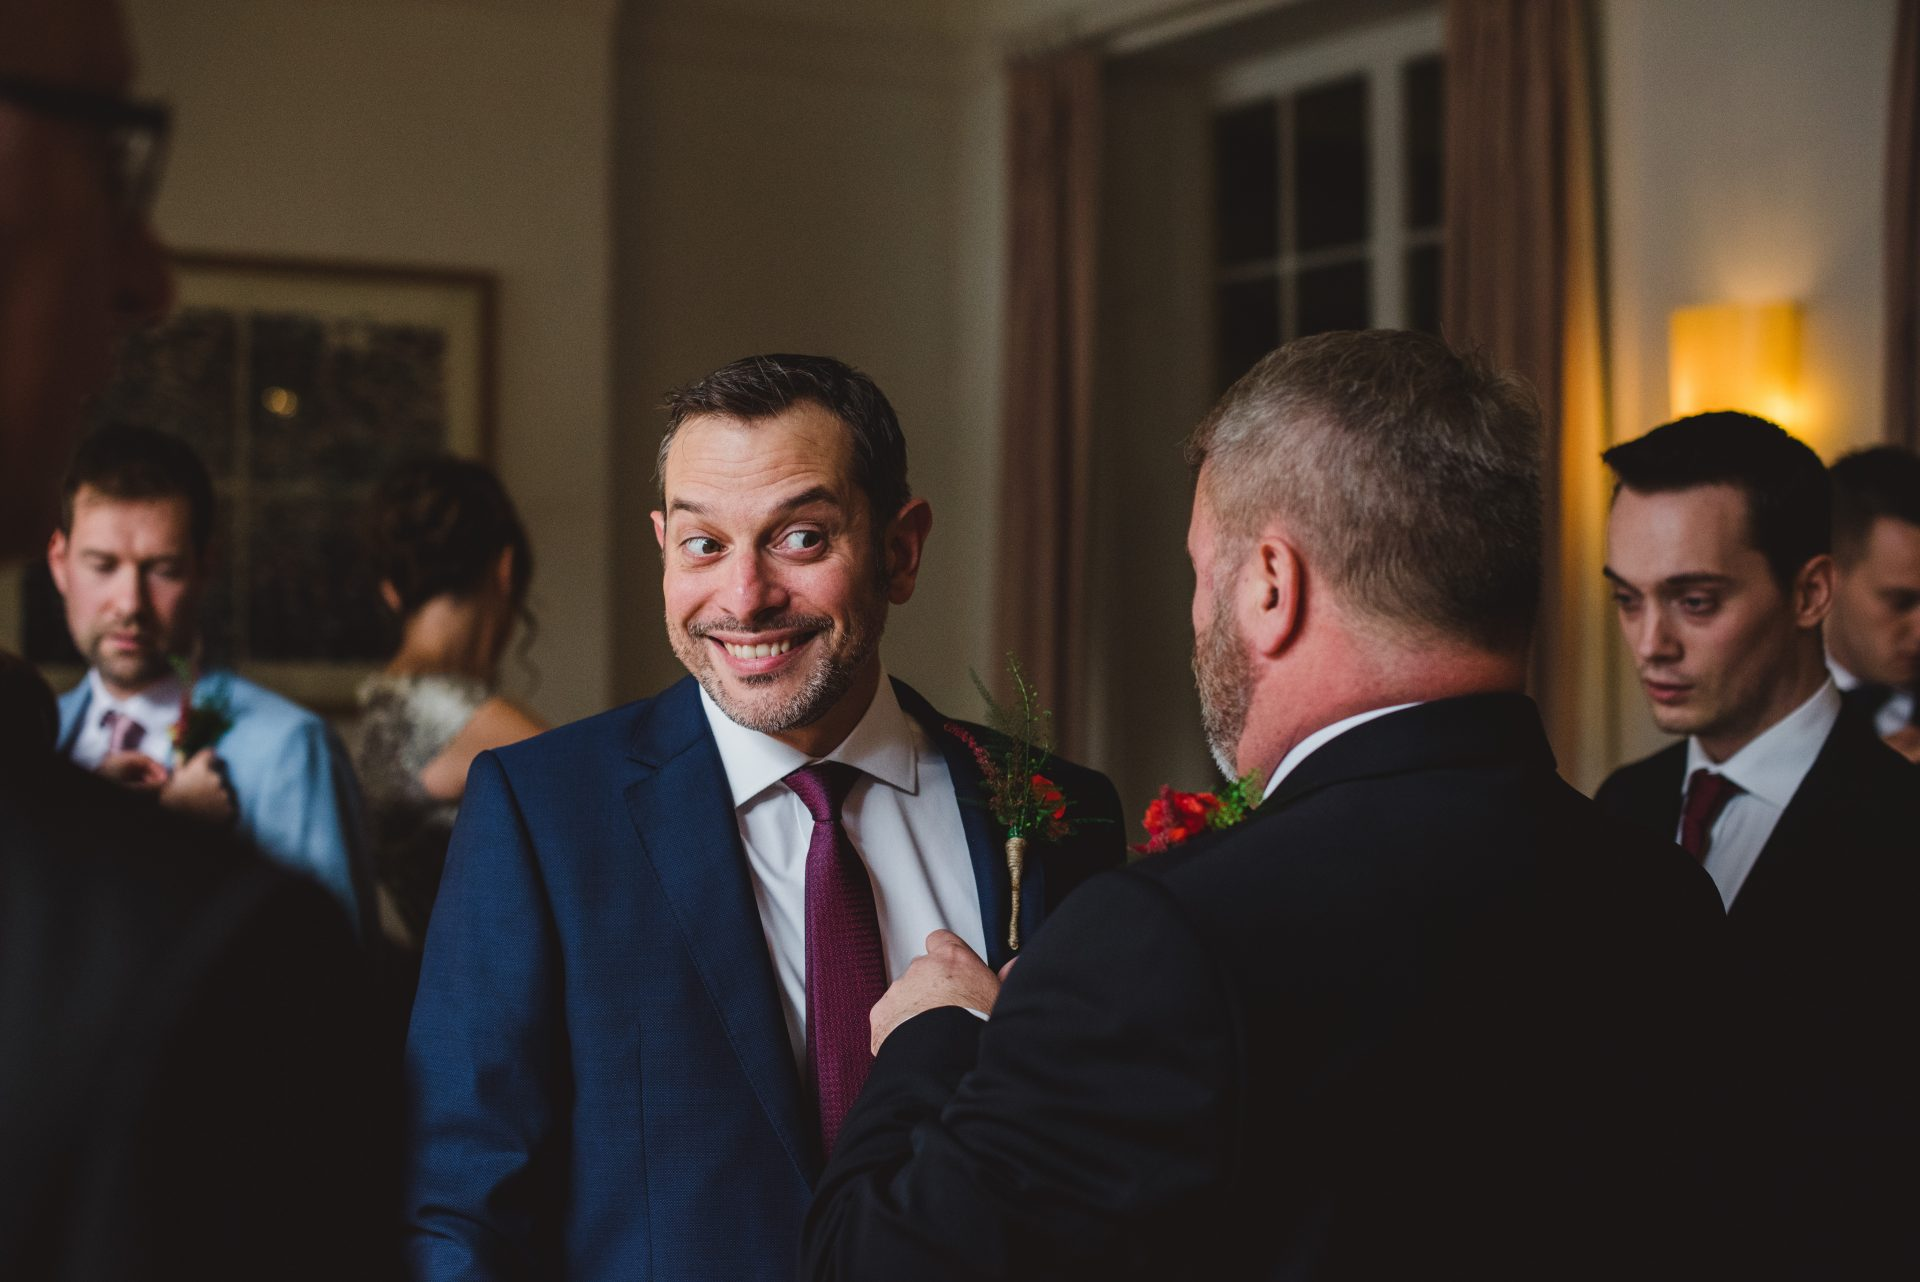 Polurrian Hotel Wedding - Stewart Girvan Photography